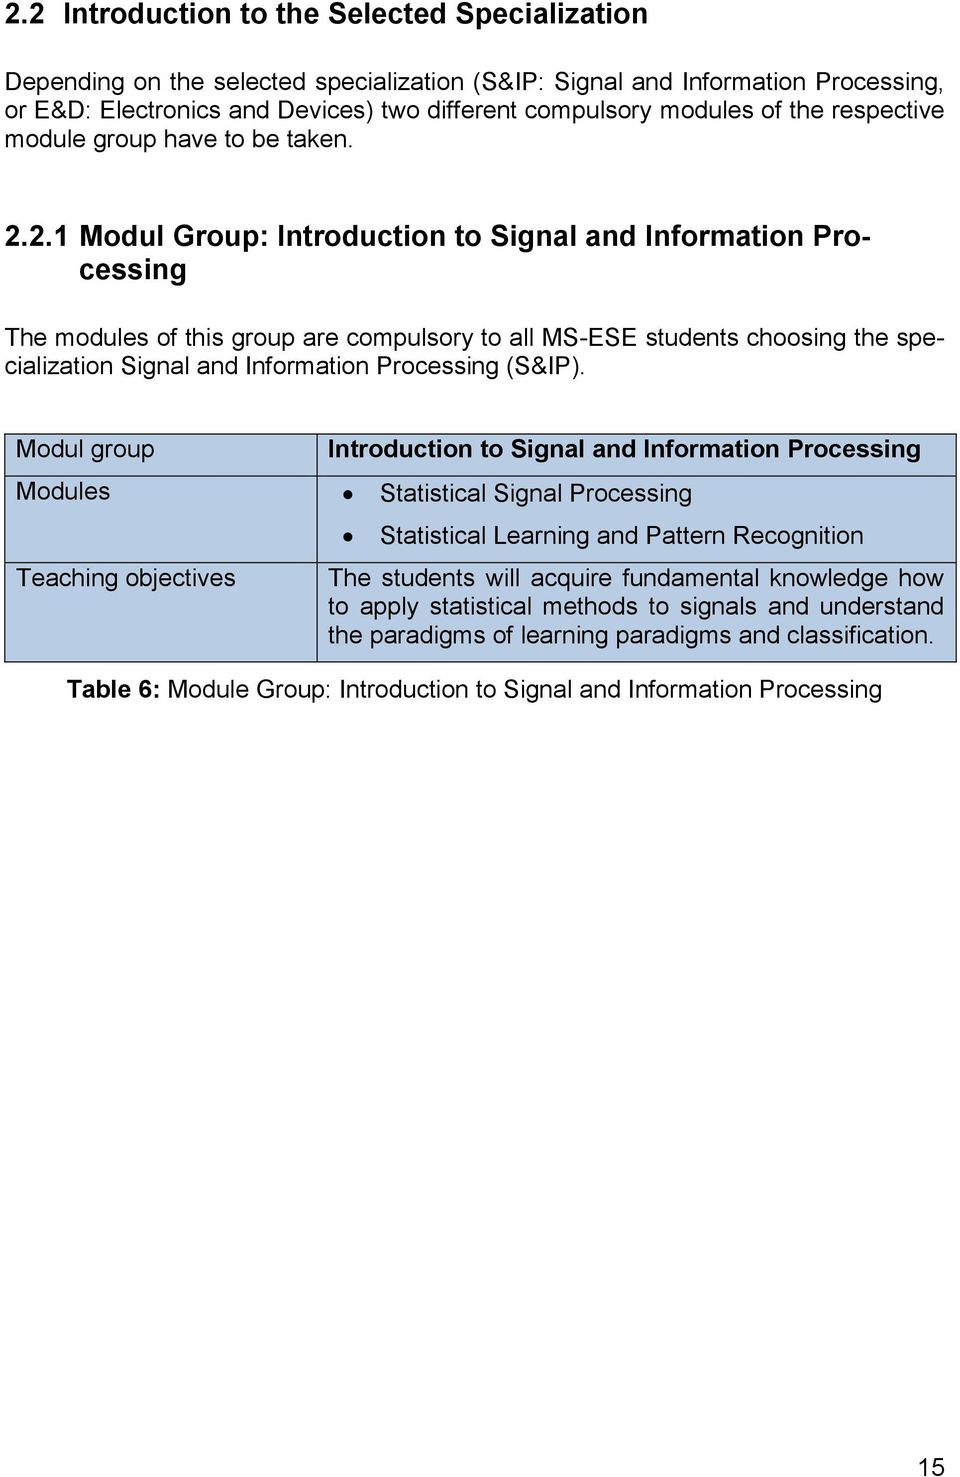 2.1 Modul Group: Introduction to Signal and Information Processing The modules of this group are compulsory to all MS-ESE students choosing the specialization Signal and Information Processing (S&IP).